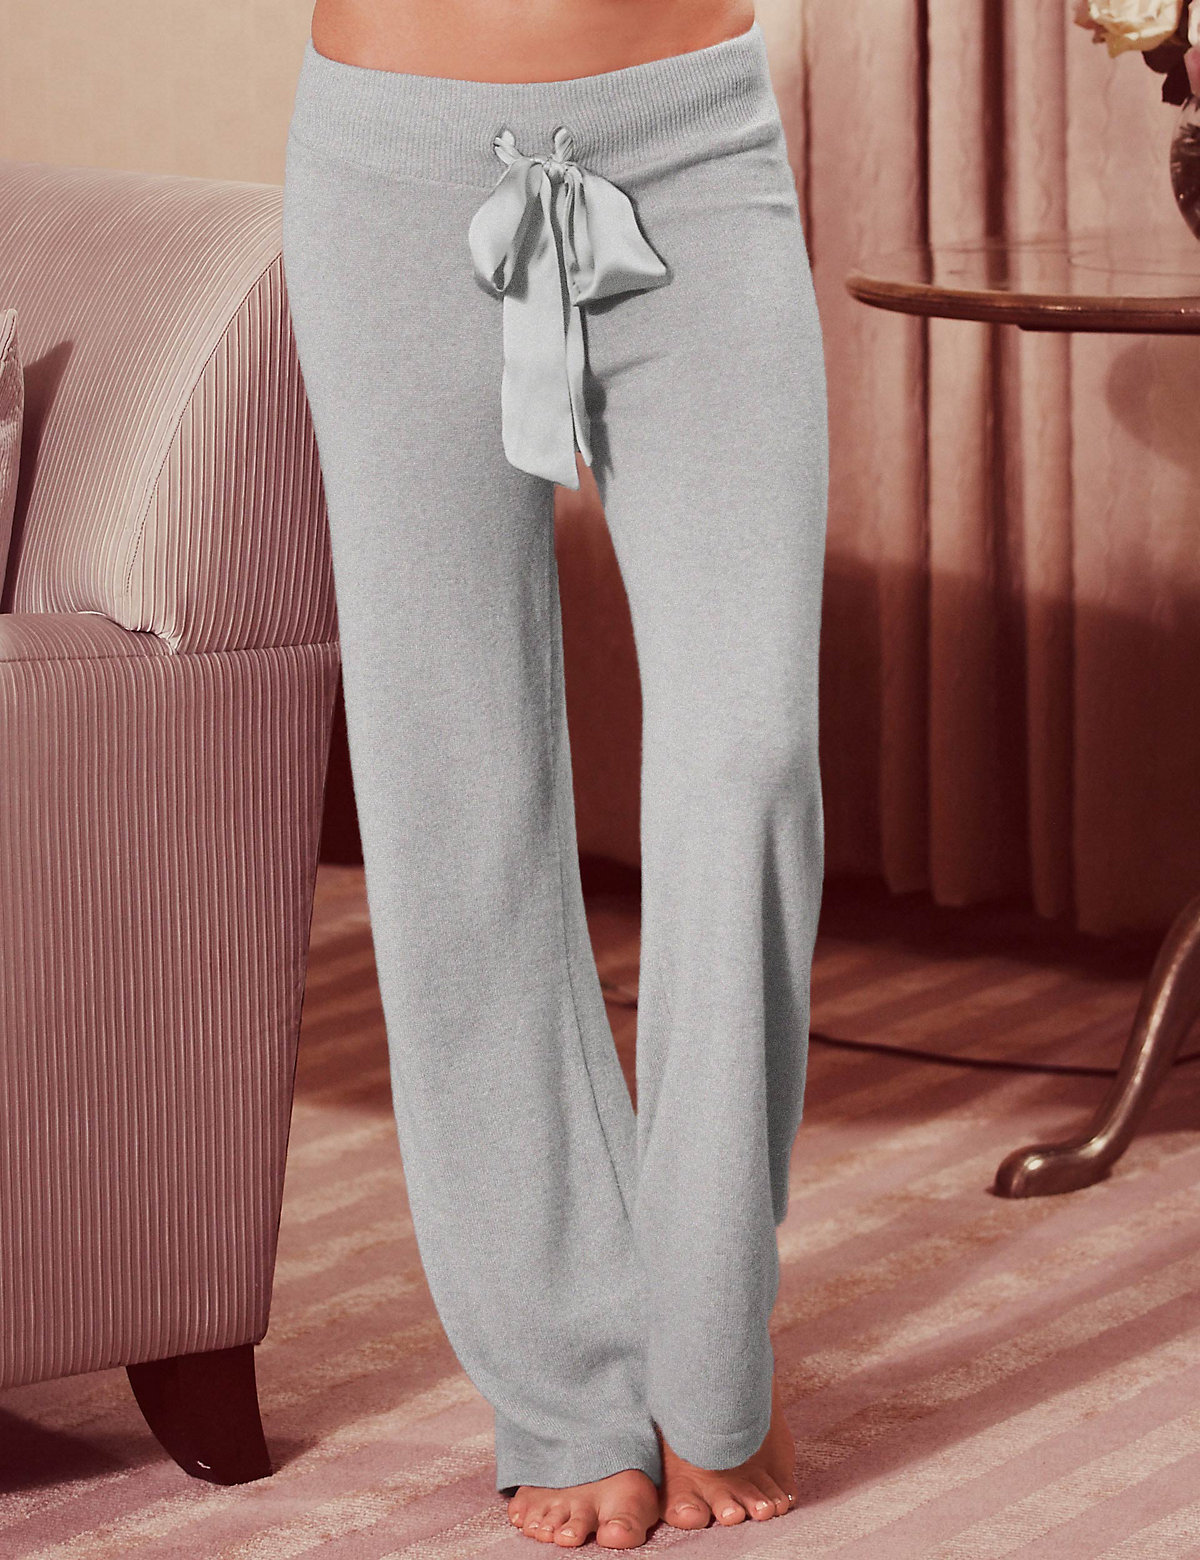 Rosie for Autograph Luxurious Pure Cashmere Pants